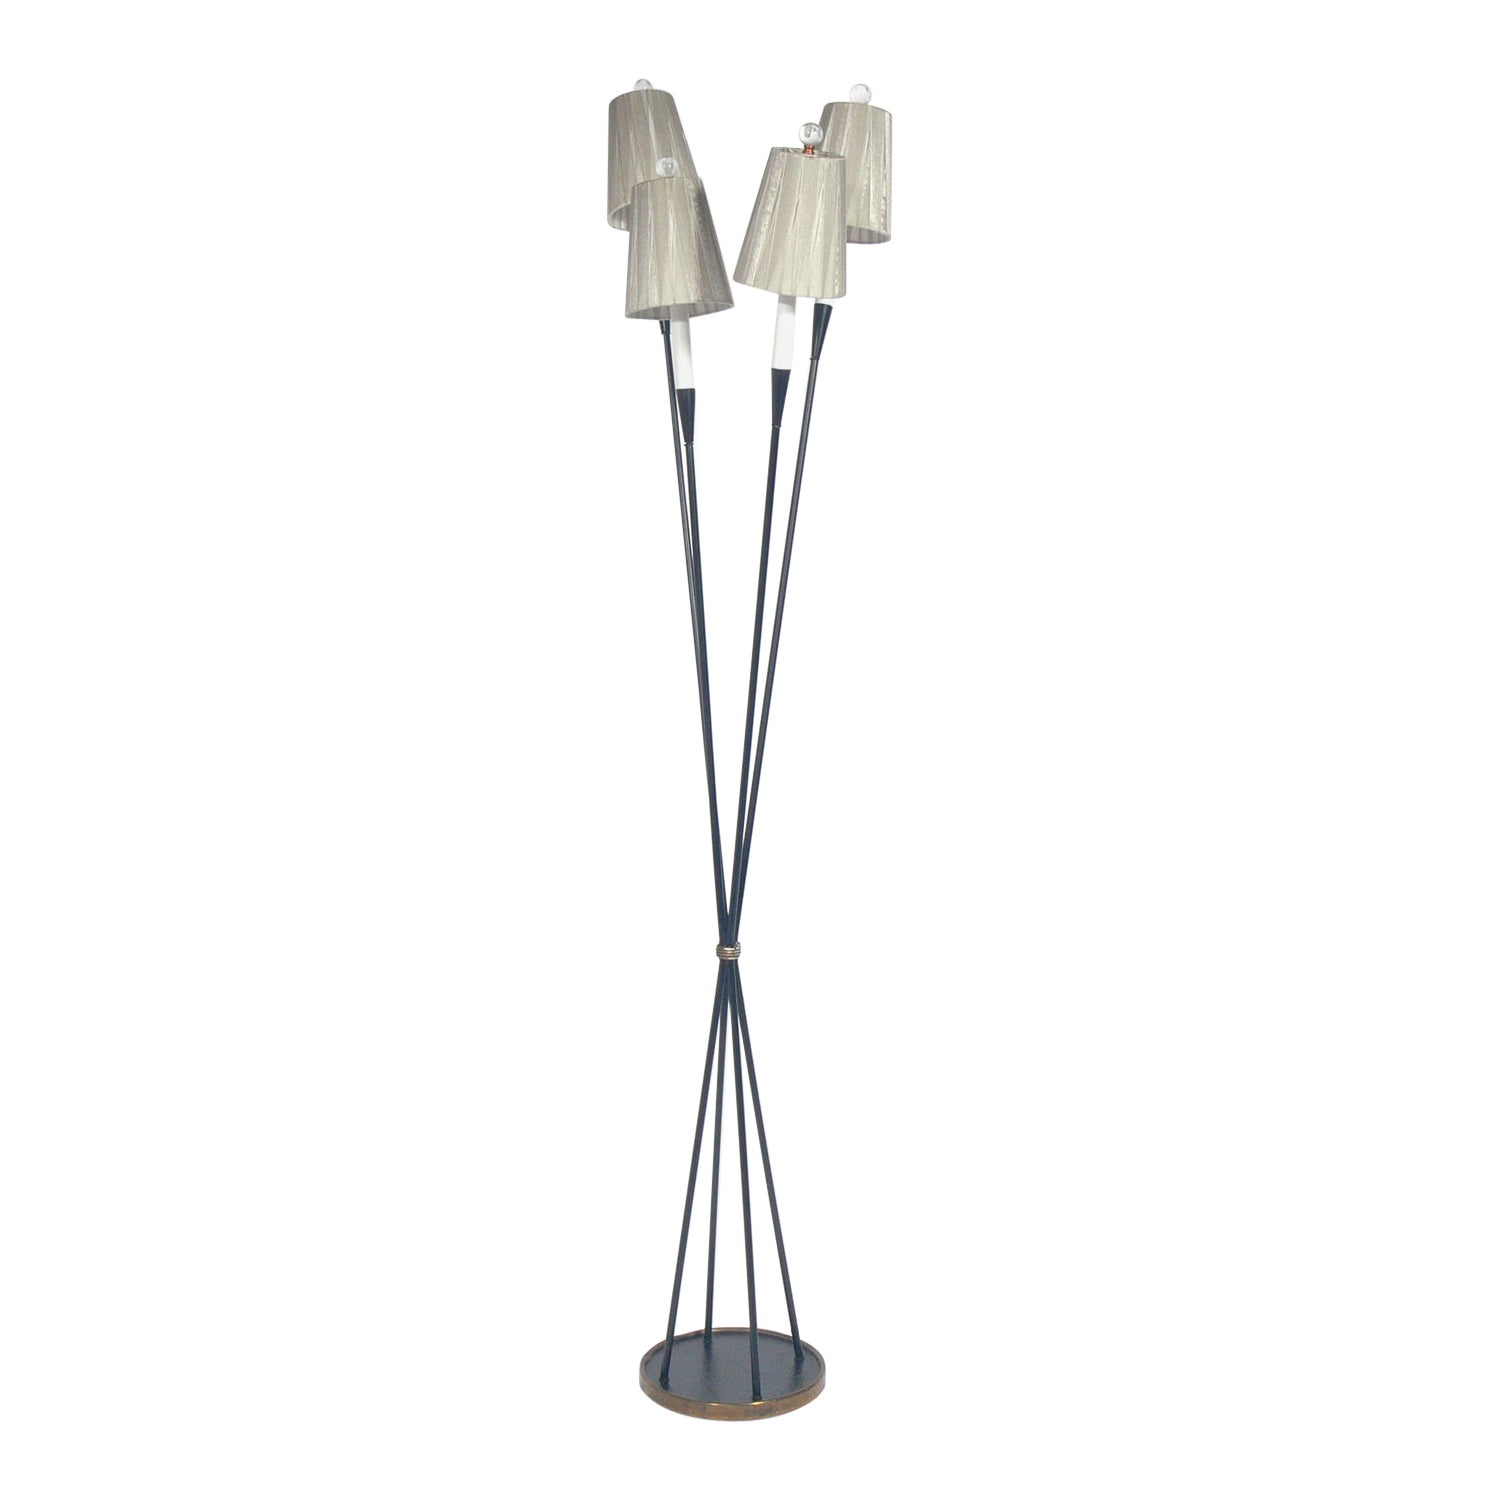 Sculptural Midcentury French Floor Lamp by Maison Lunel